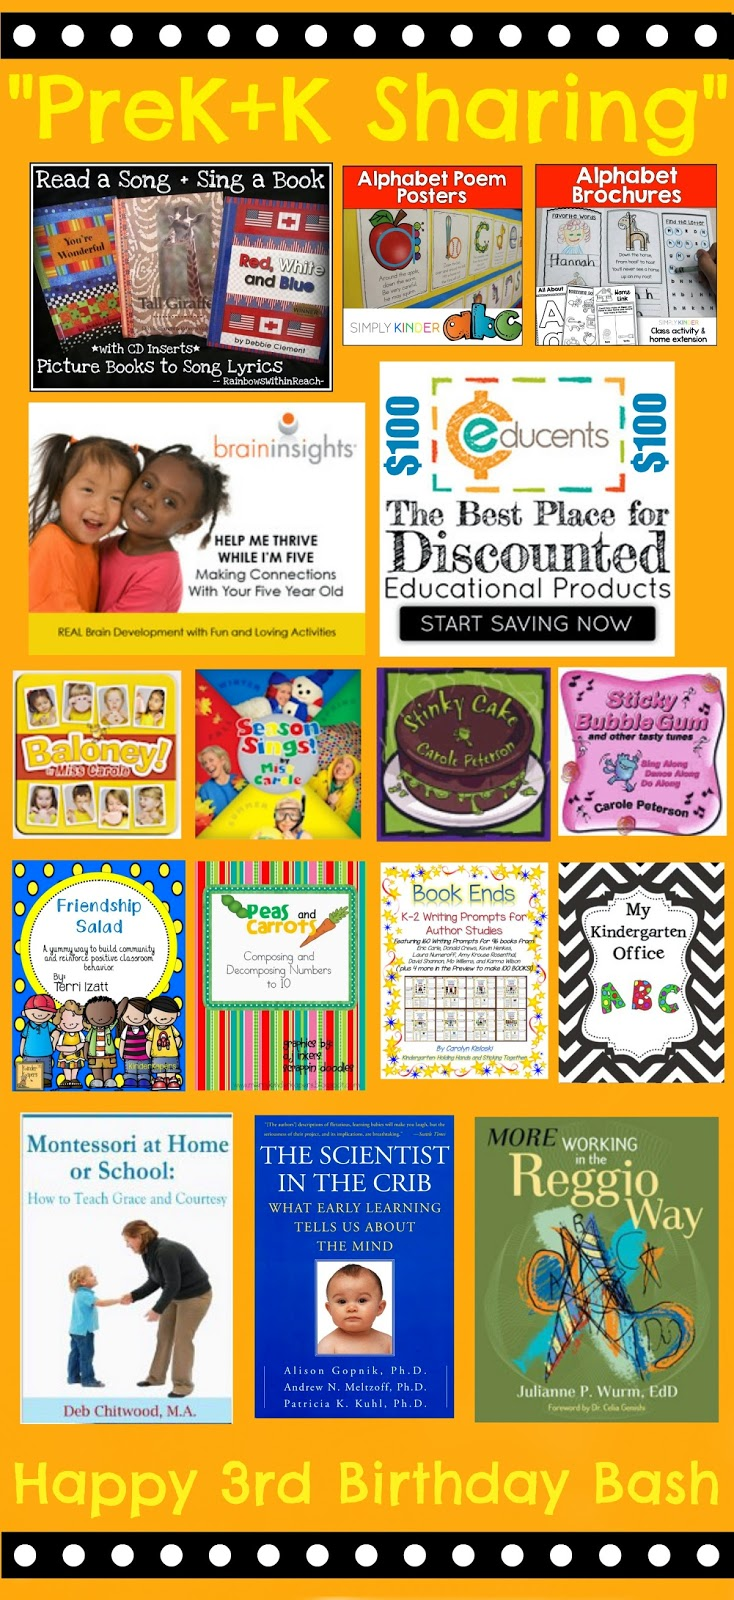 """PreK+K Sharing"" Collaborative Blog Turns 3 with a CELEBRATION Give AWAY!"